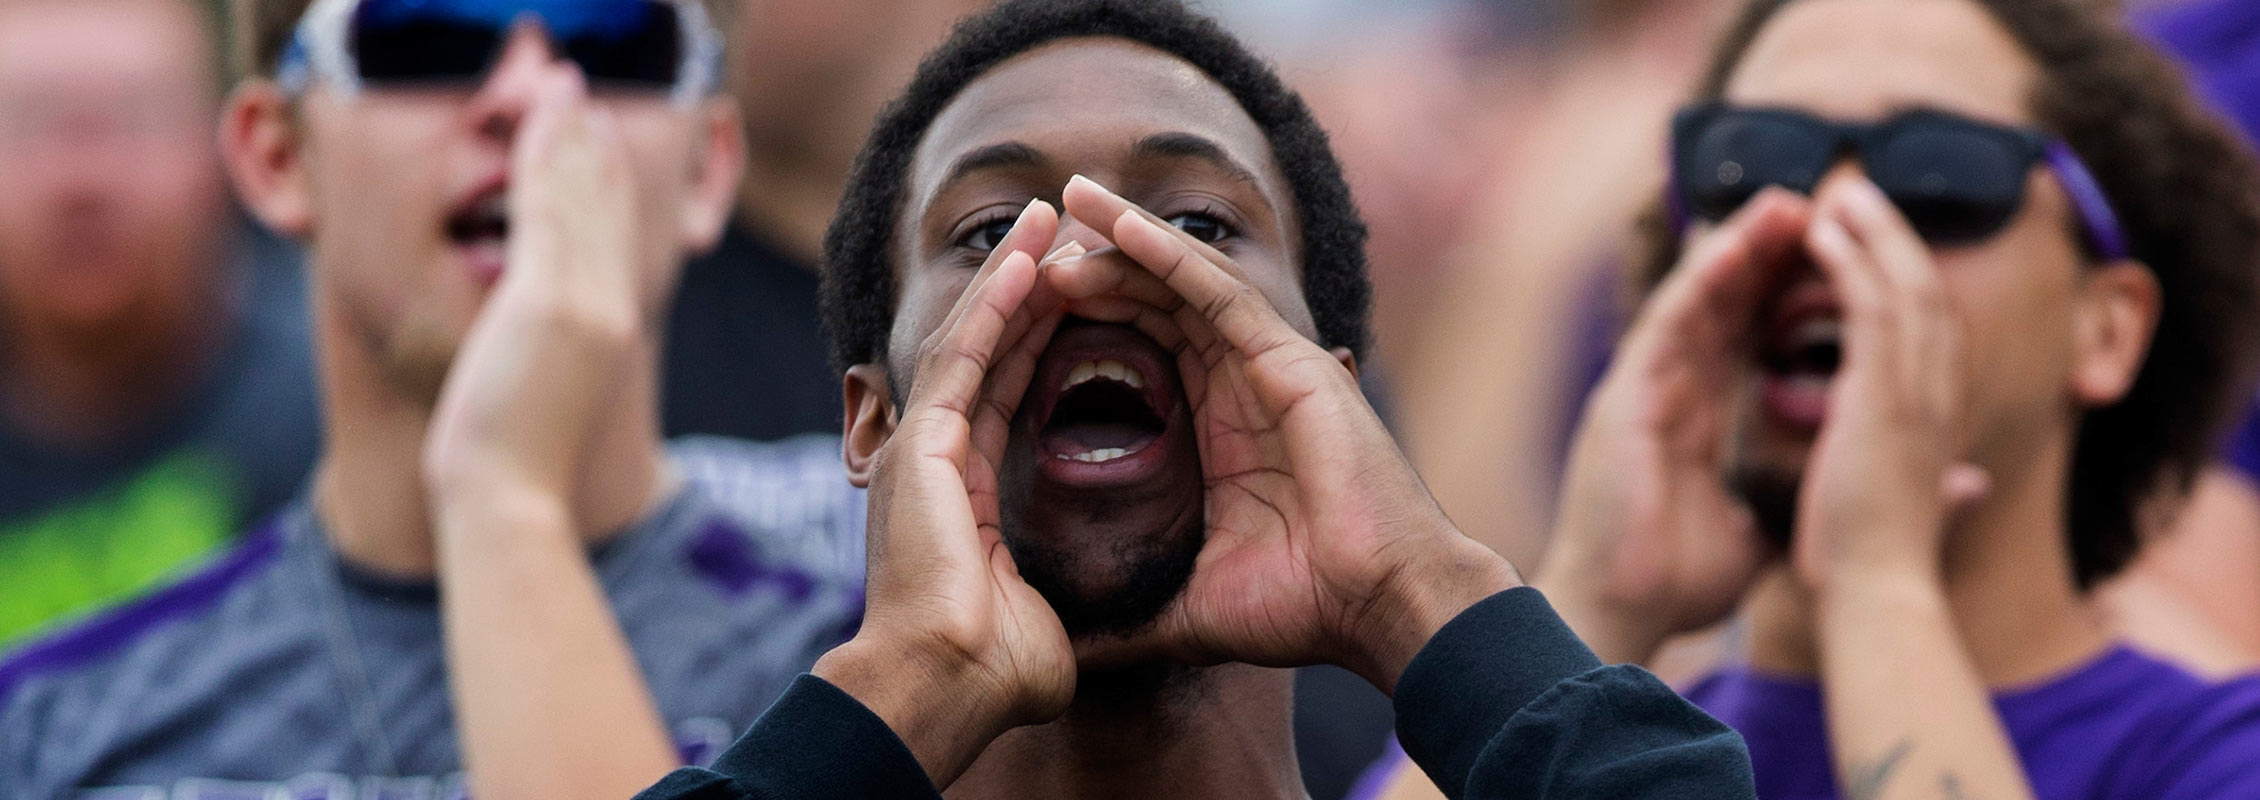 International student cheering at UW-Whitewater football game